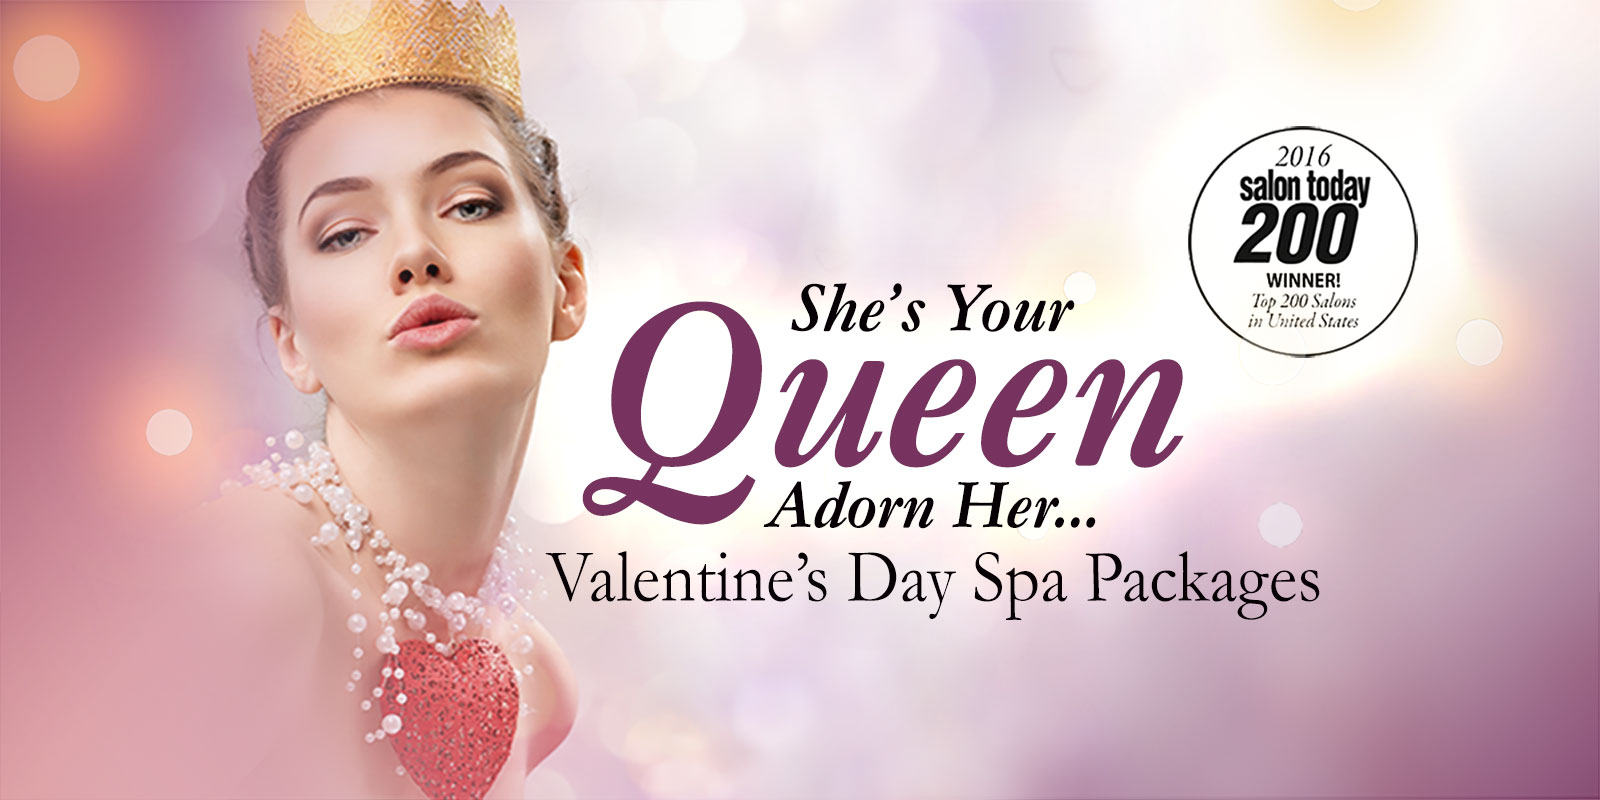 Valentine's Day Spa Packages